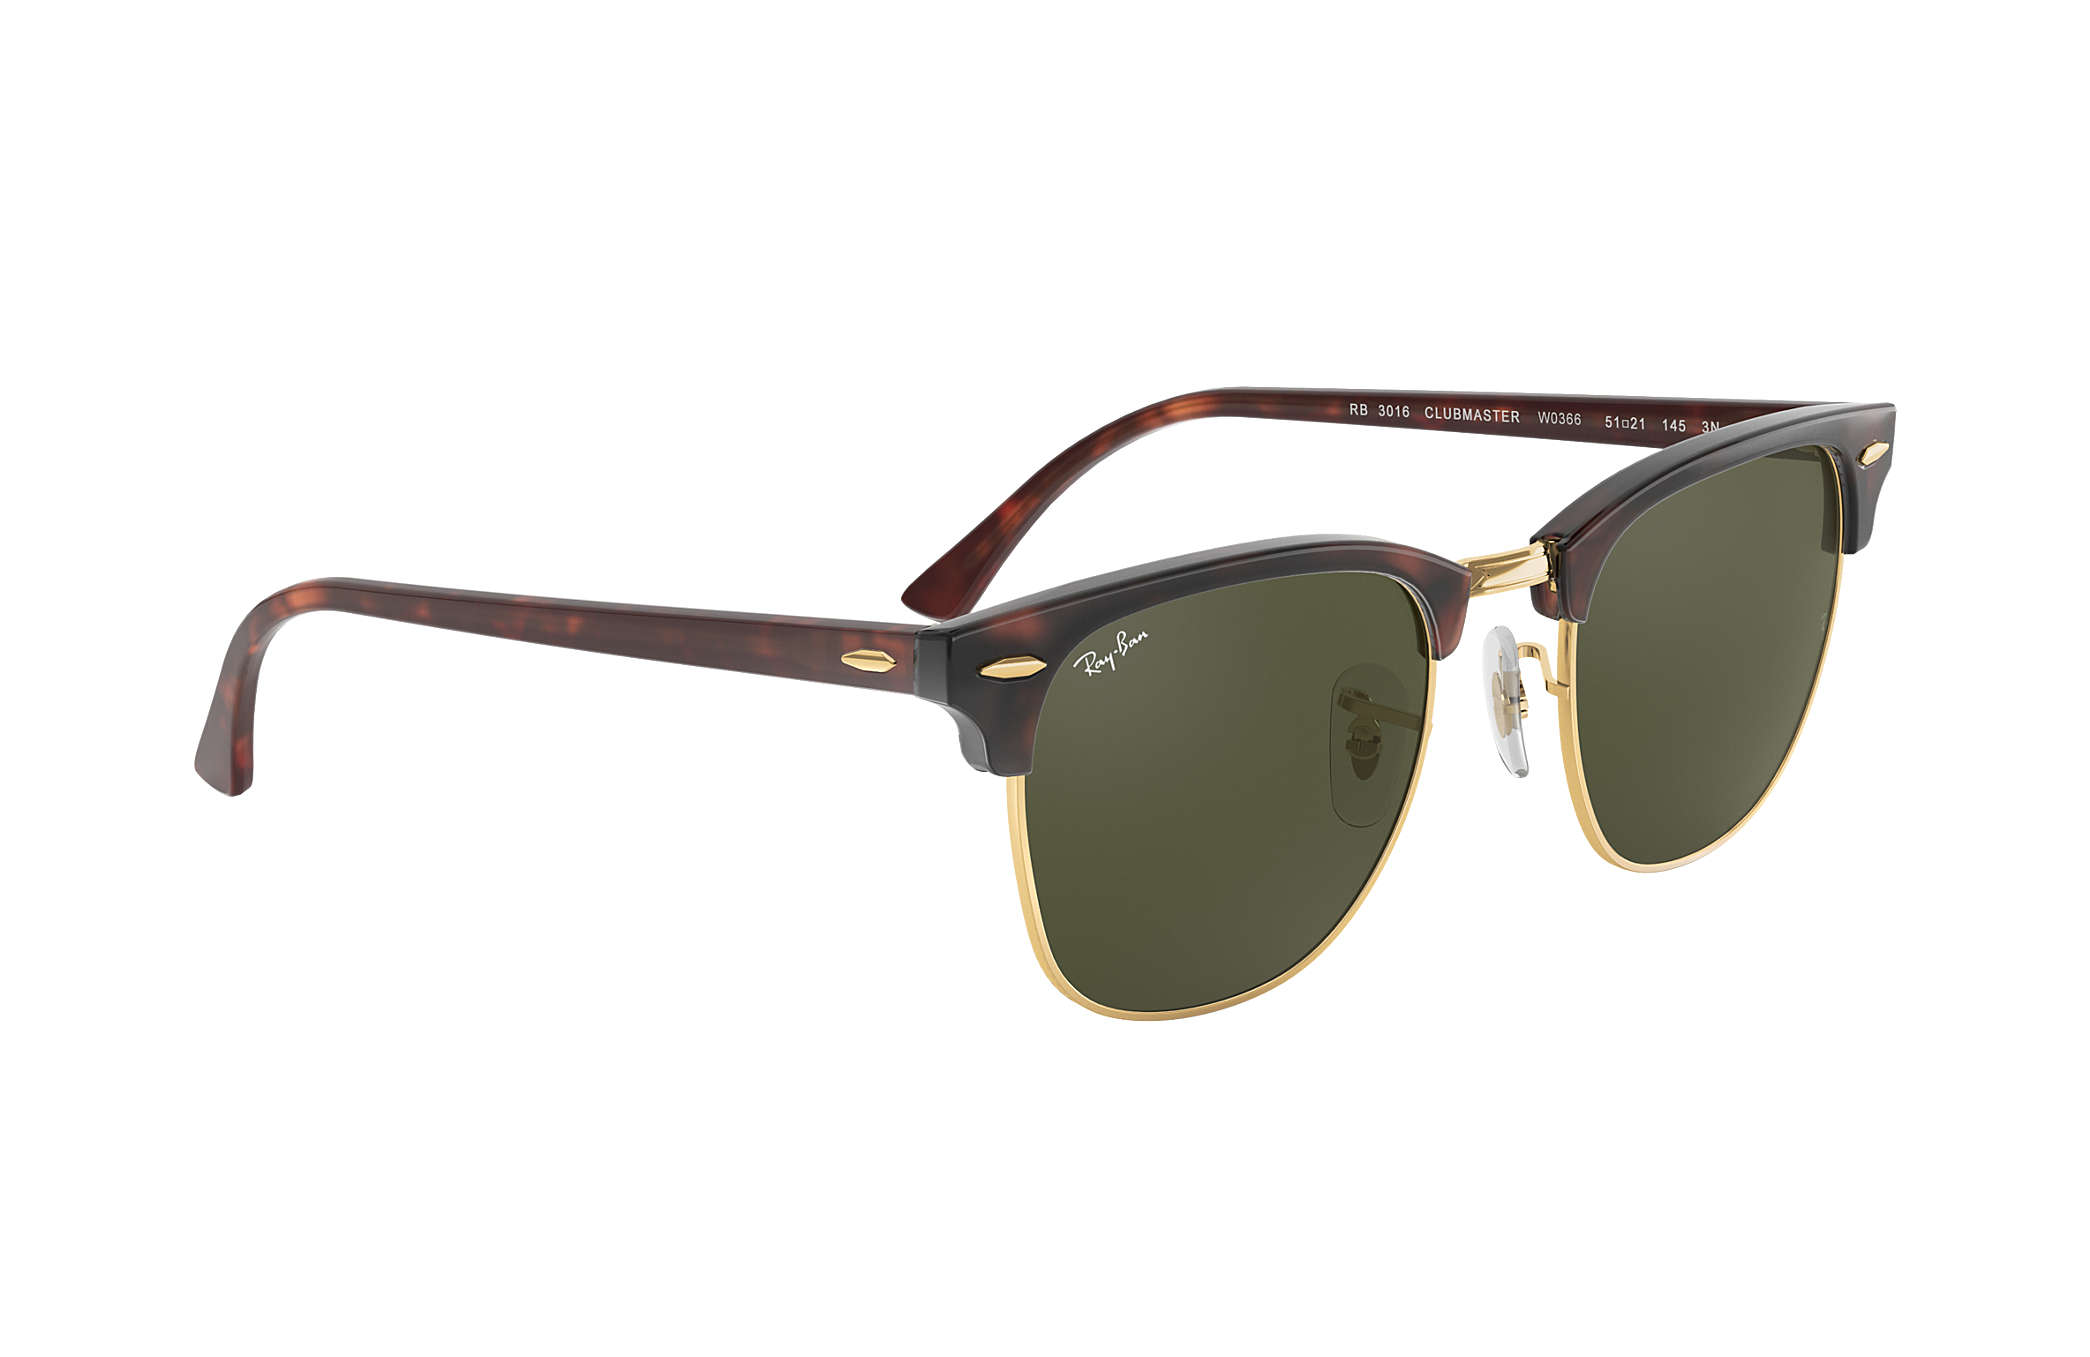 02c66638001 Ray-Ban Clubmaster Classic RB3016 Tortoise - Acetate - Green Lenses ...